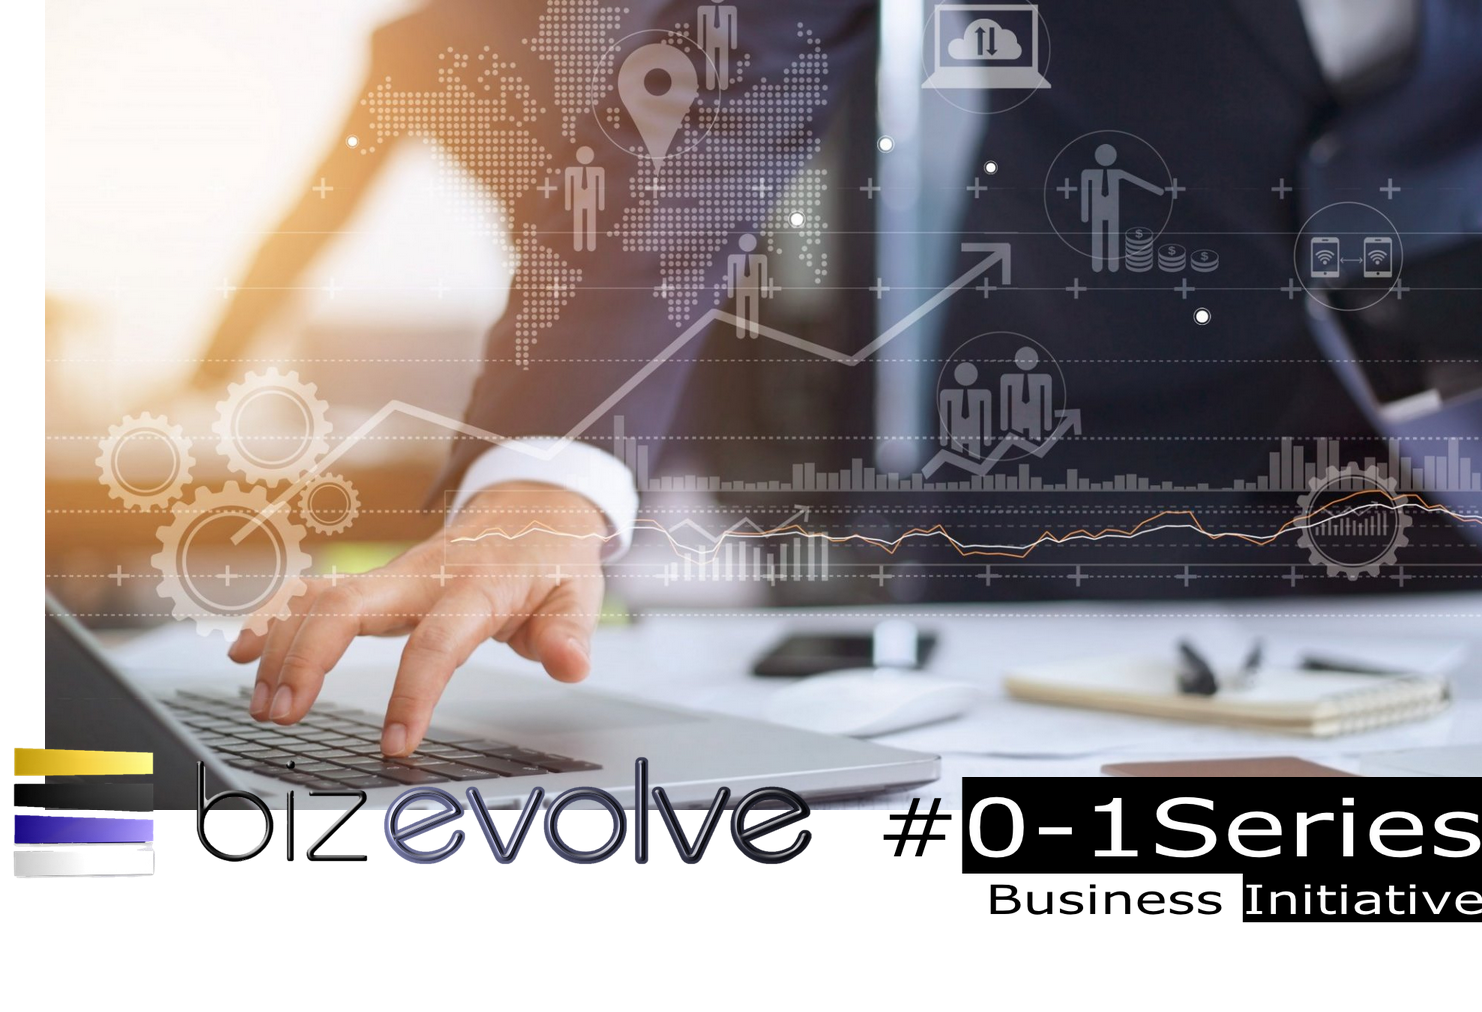 Zero to One Series | Business Start Up Initiatives